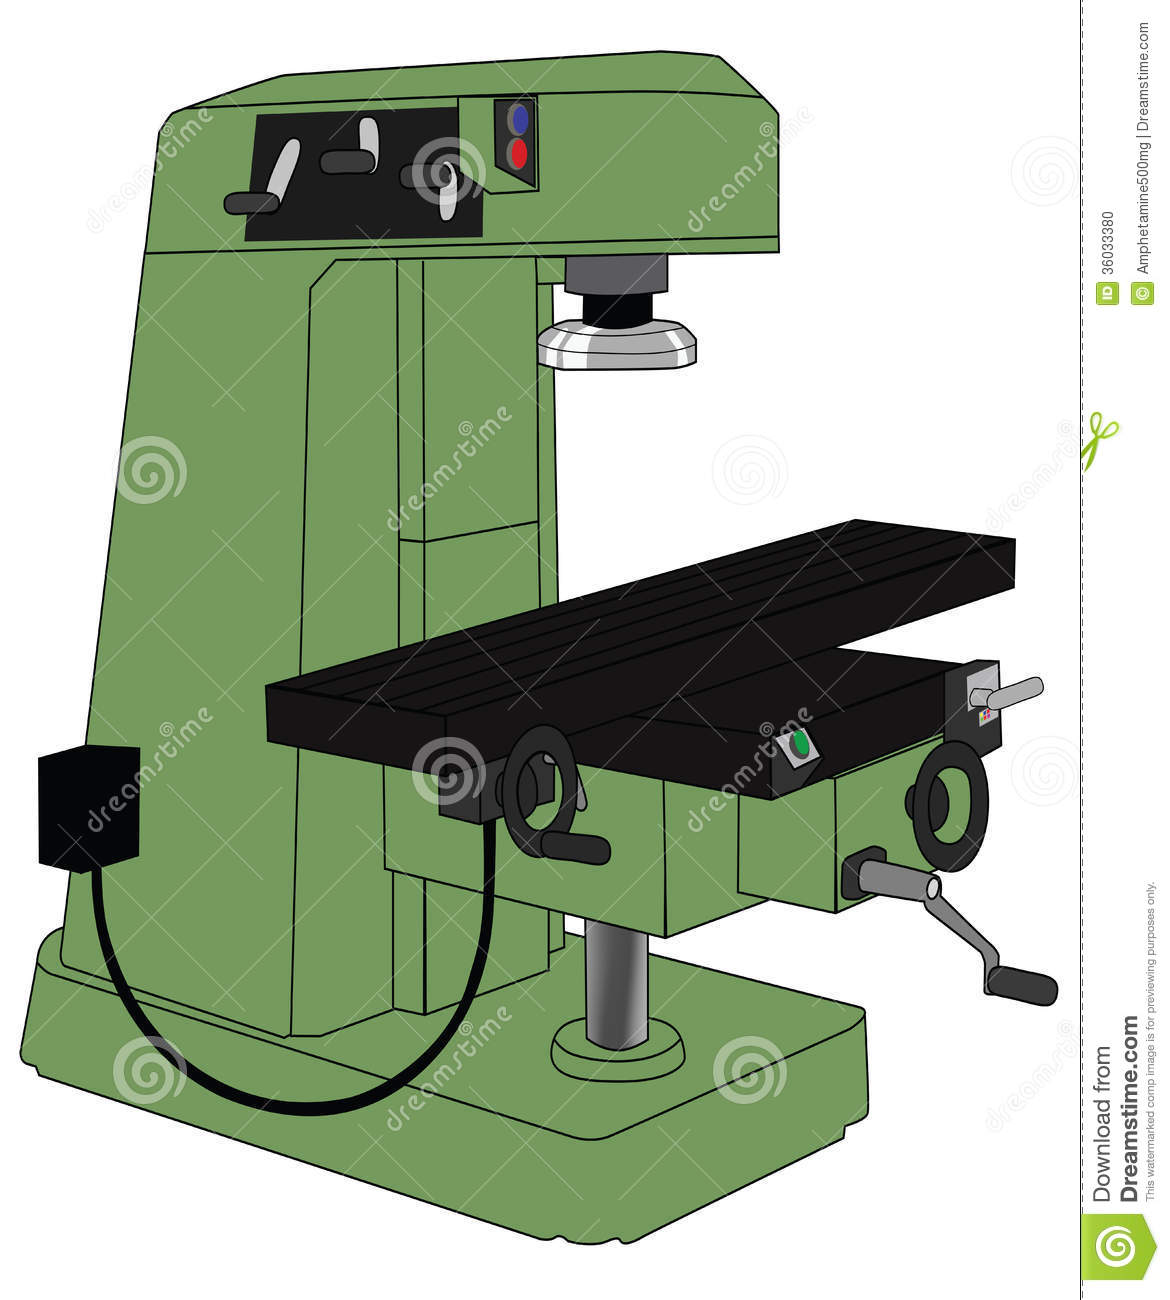 Milling machine clipart.